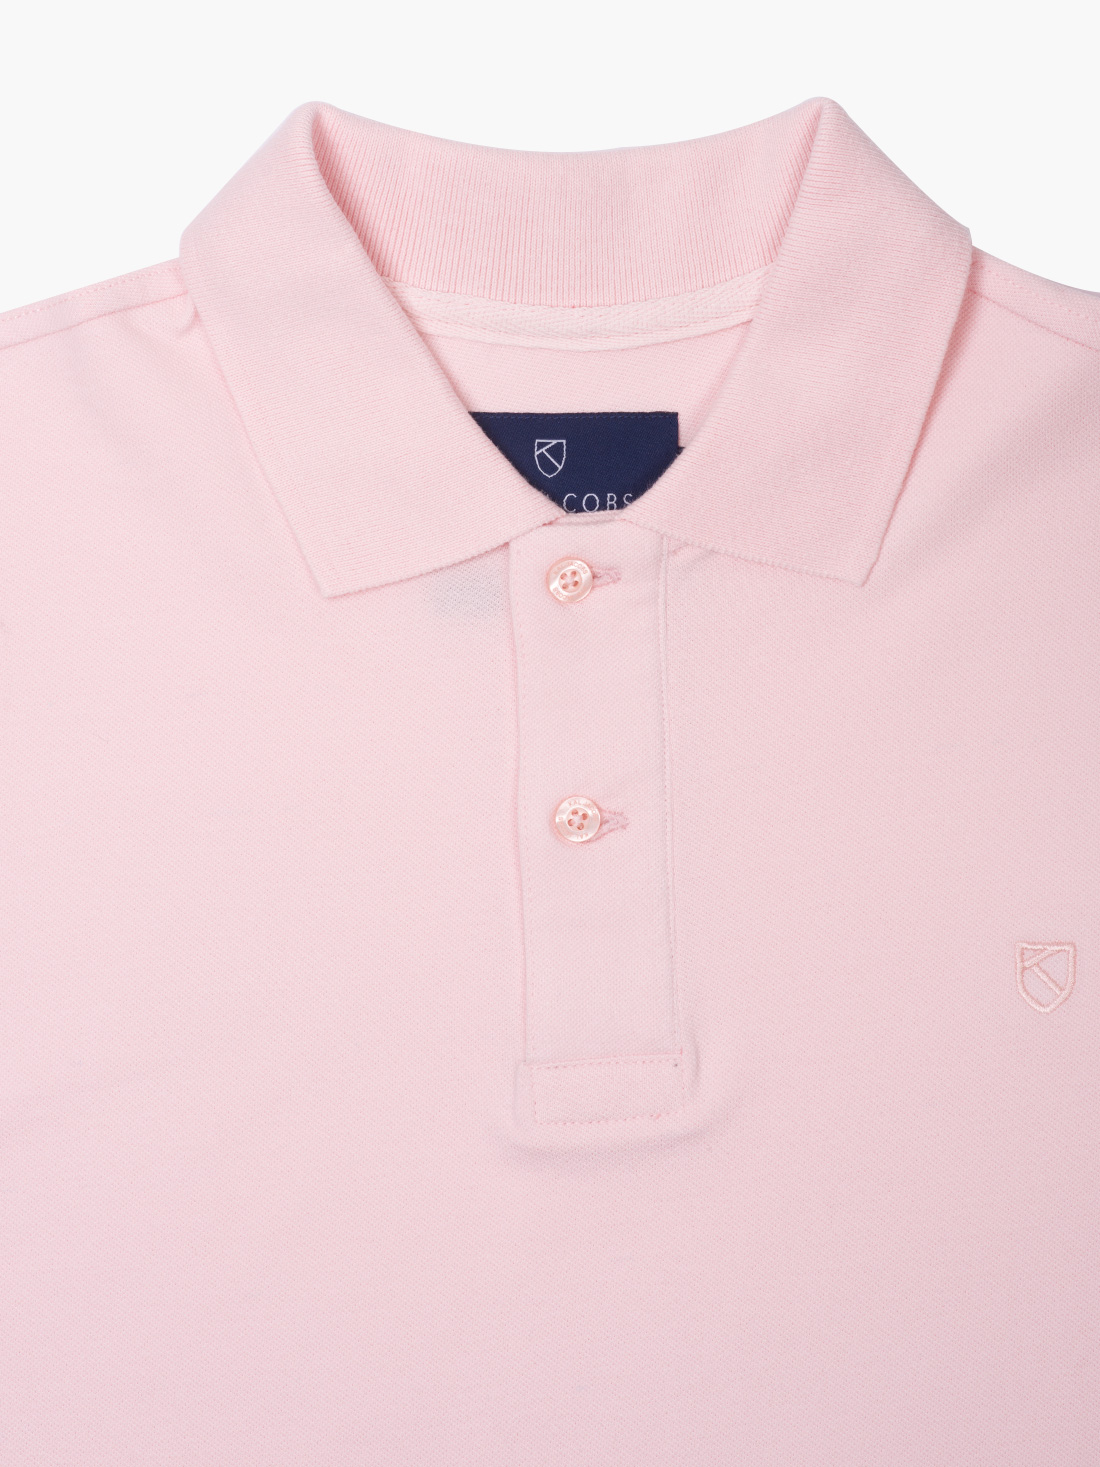 Kal Jacobs Classic Fit Pale Pink Polo Shirt